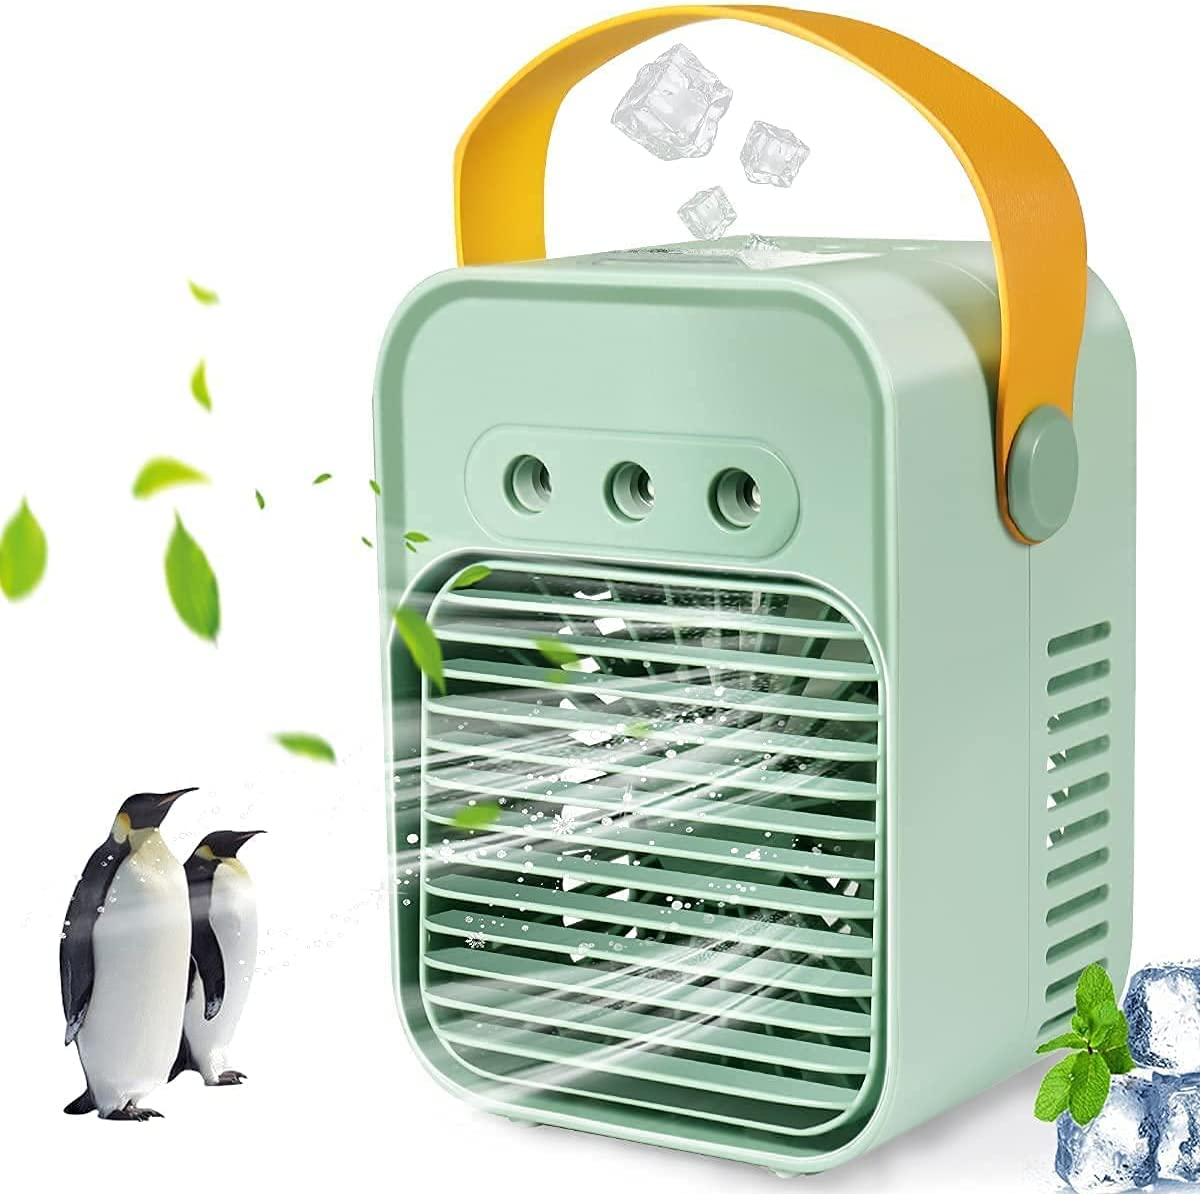 Rapid rise NEW Portable Air Conditioner 2000mAh Rechargeable Fan Atomization